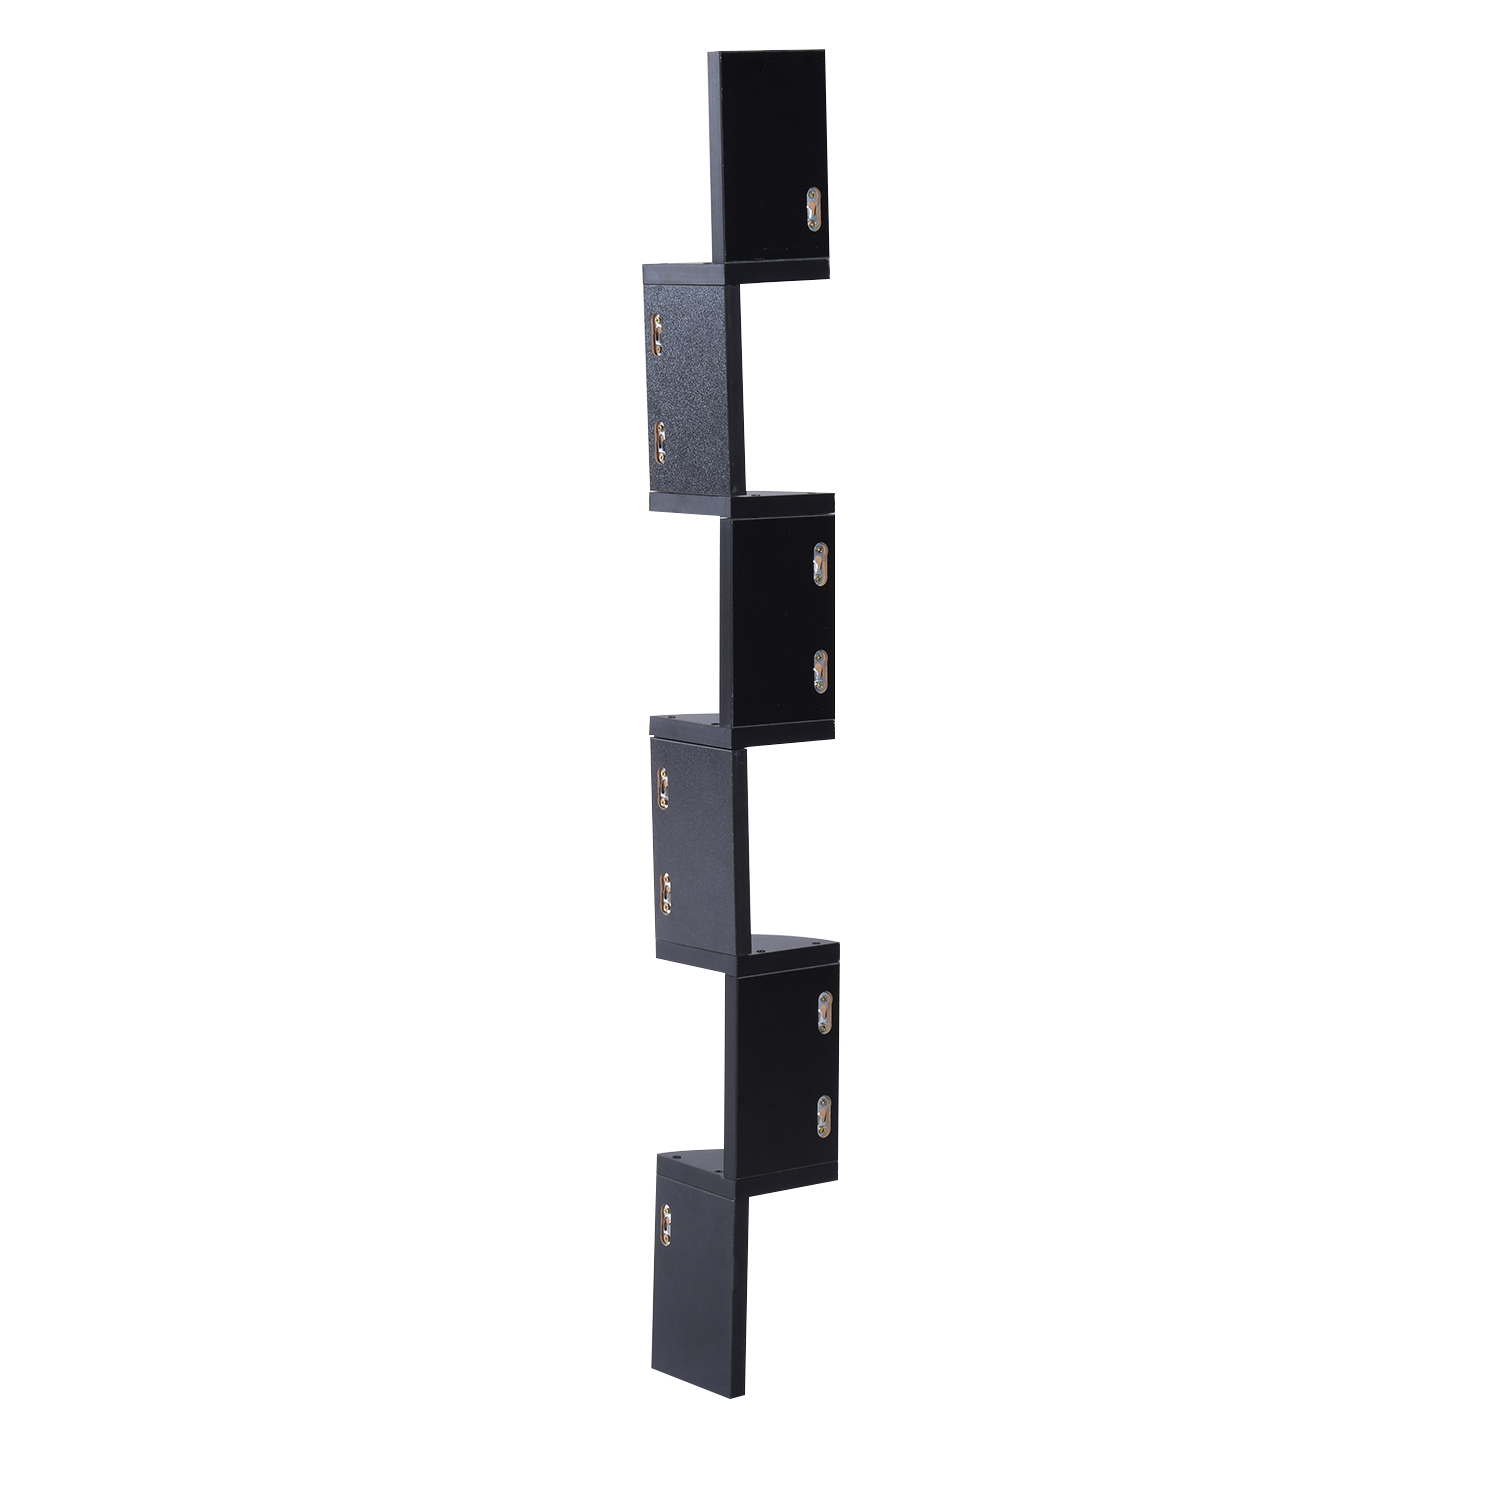 Wall Mounted Shelves Canada Cad 29 99 5 Tier Corner Wall Mount Shelf Storage Rack Hanging